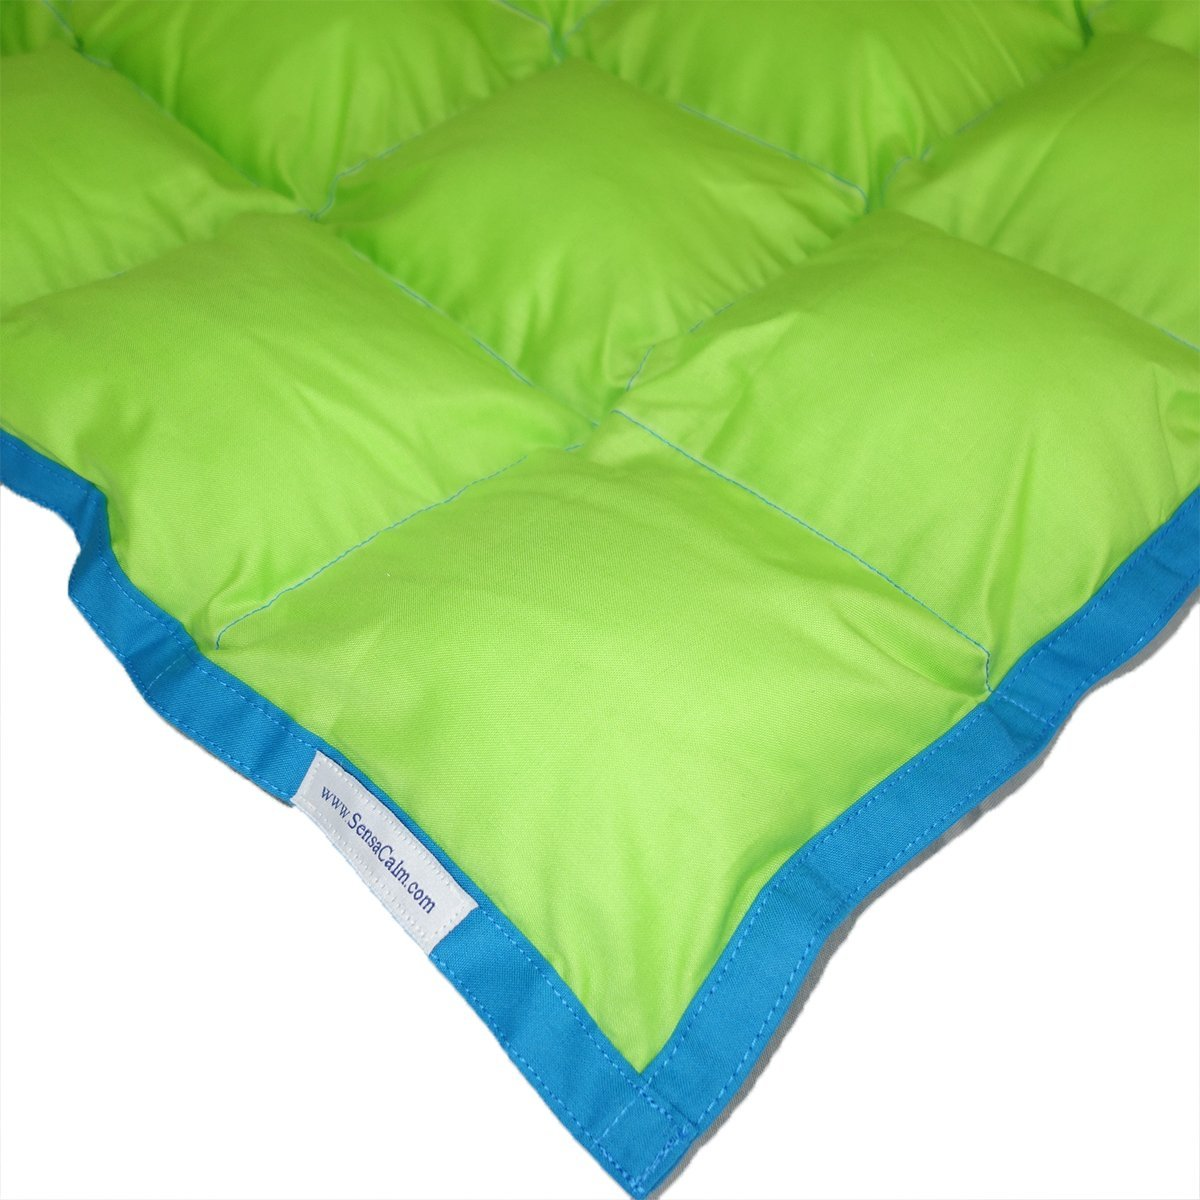 SensaCalm Therapeutic Small Weighted Blanket - Jasmine Green with Teal Blue-8 lb (for 70 lb child)